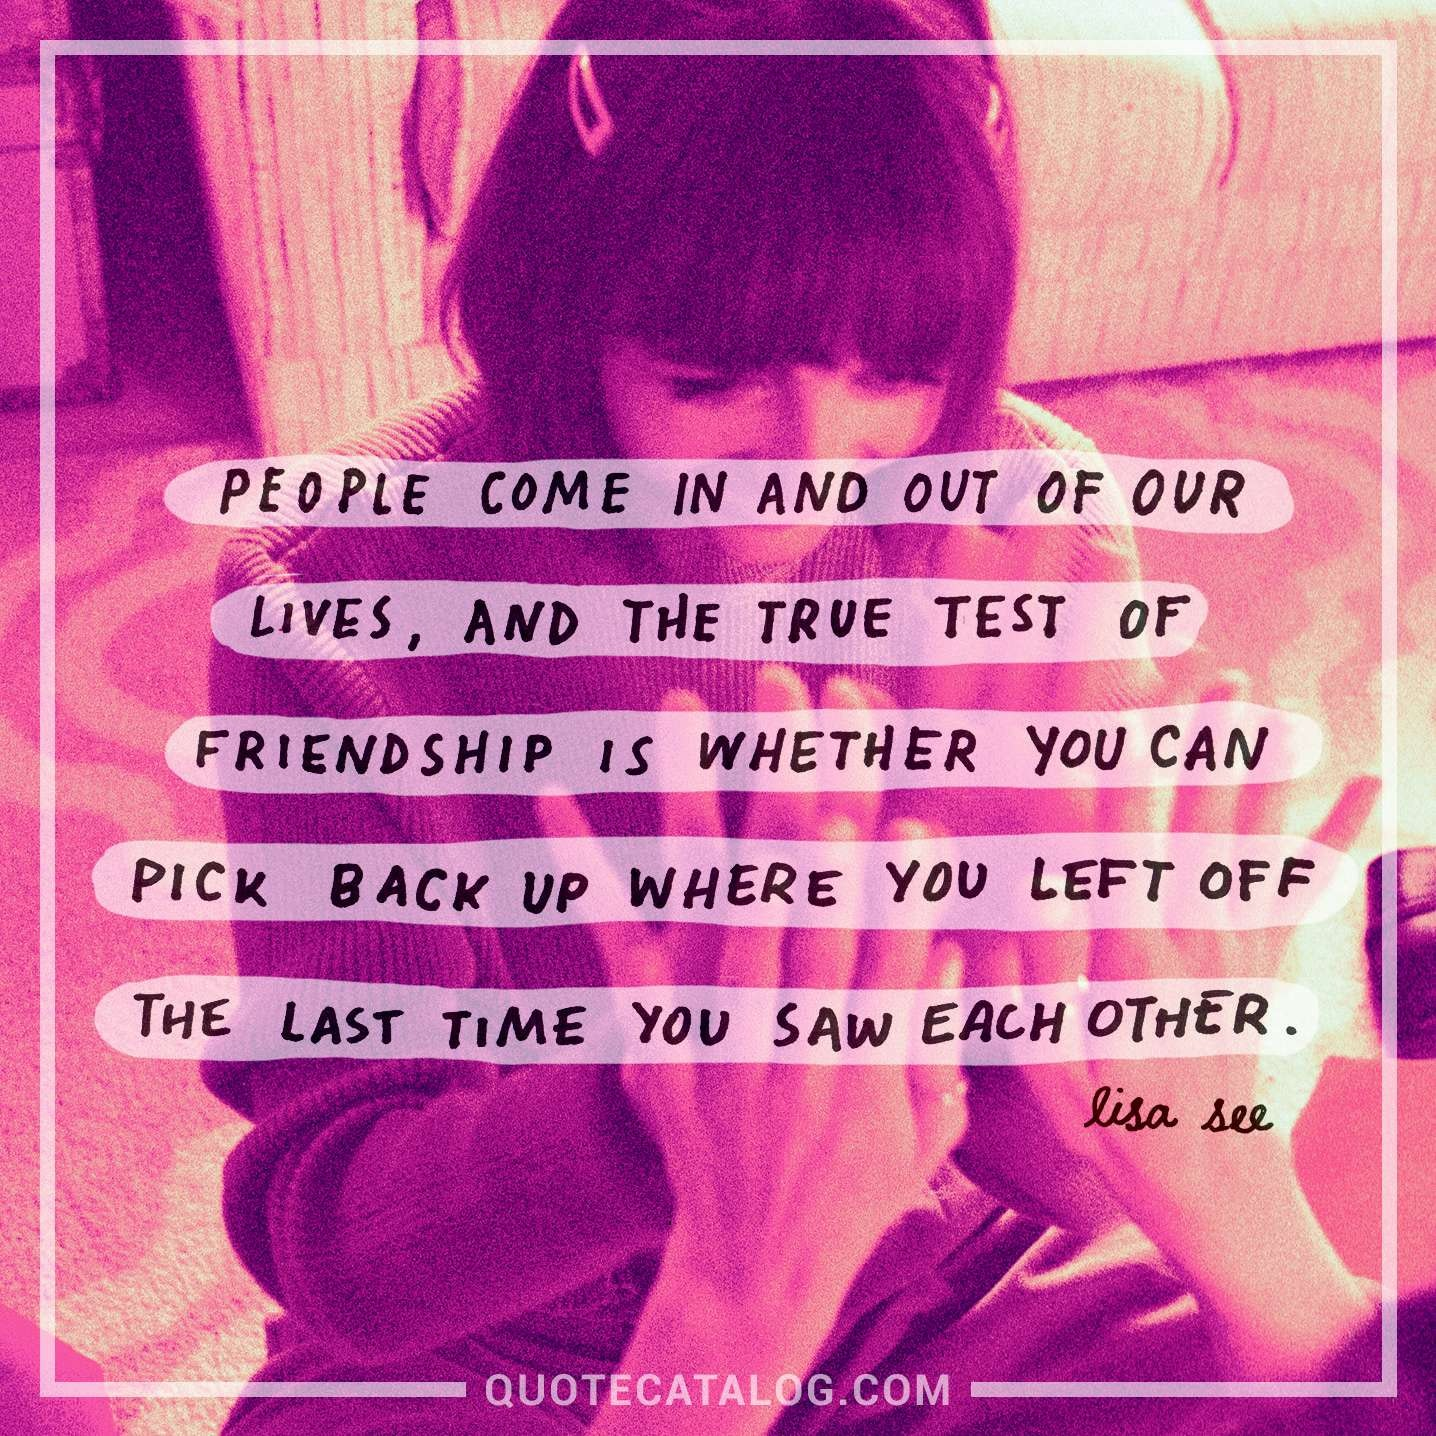 People Come In And Out Of Our Lives, And The True Test Of Friendship Is